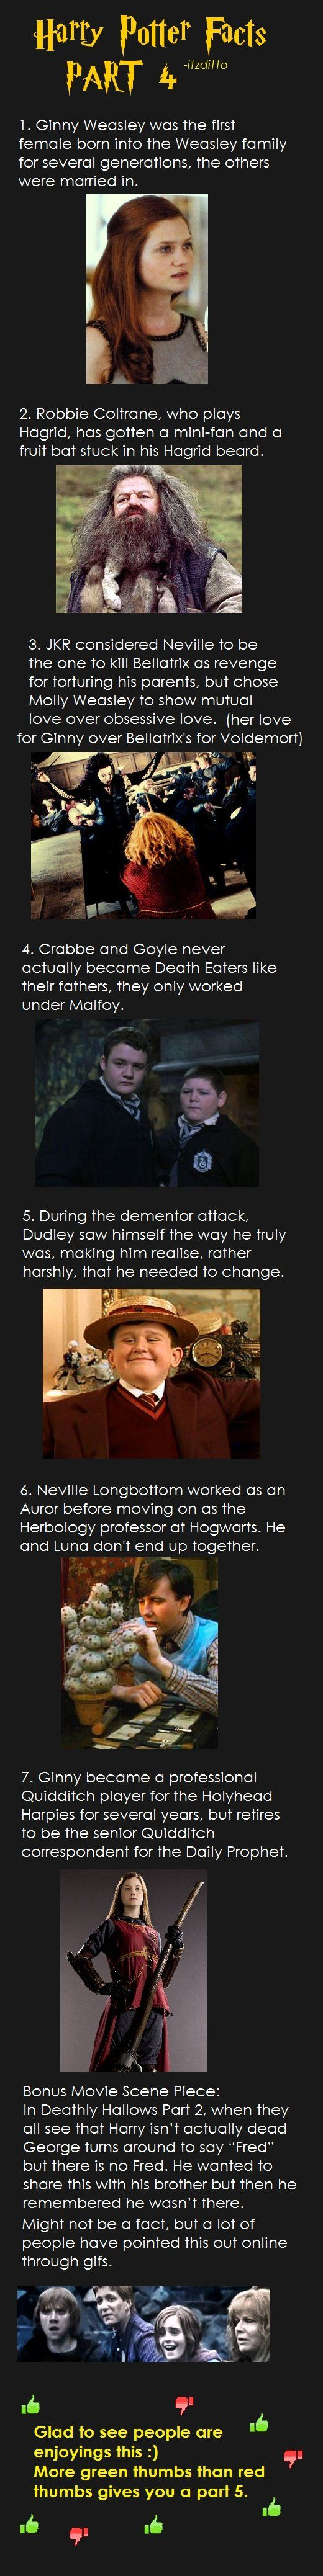 Potter facts: Facts About Harry Potter, Book, Harry Potter Facts Parts 4, Hp Facts, Movie, Fun Facts, Potterhead, Fandom, So Sad